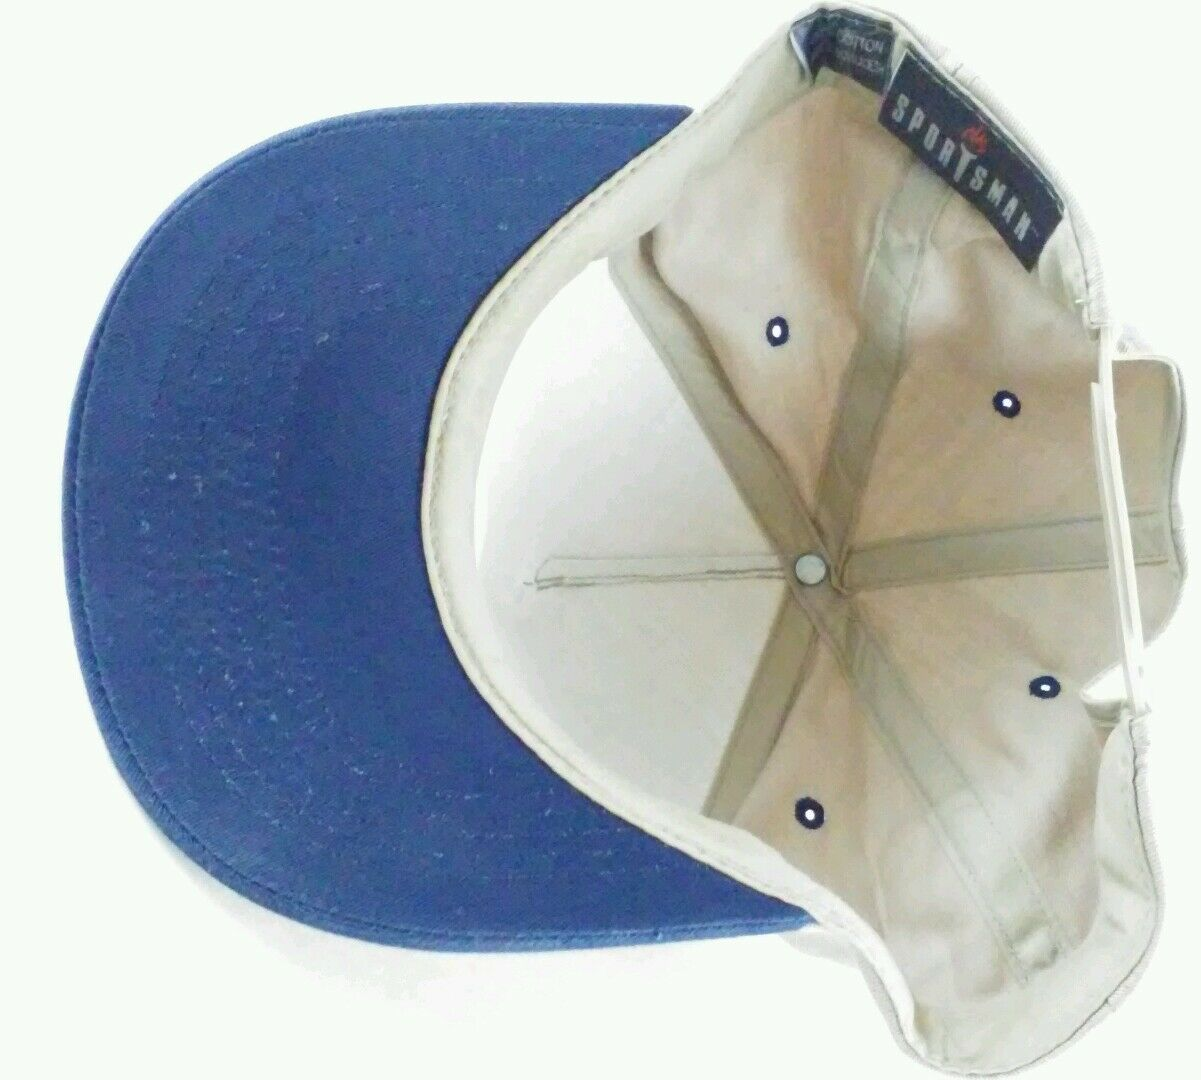 100pct Cotton Official Official Cotton Broome Cadillac Ball Cap Hat Tan Blue Snap Back Sportsman b9d0cd